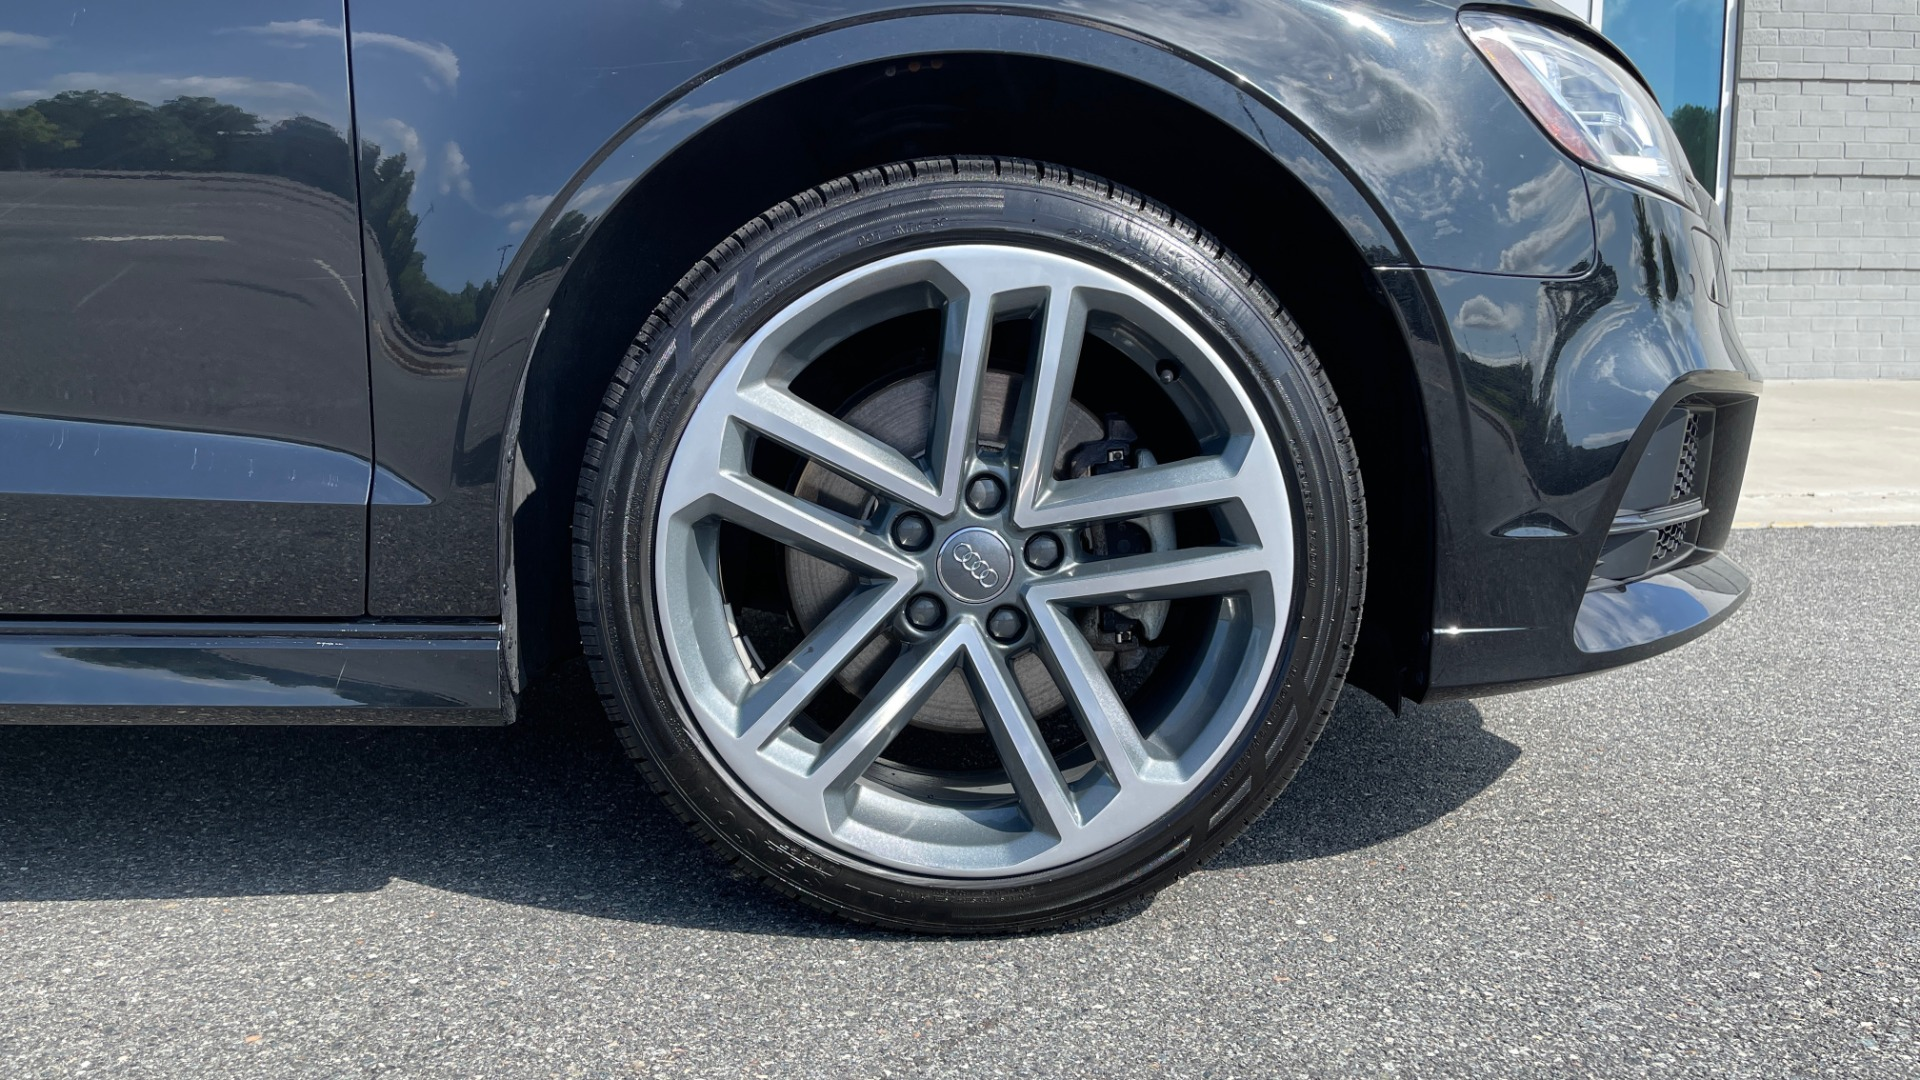 Used 2018 Audi A3 SEDAN PREMIUM PLUS / S-LINE / PANO-ROOF / PARK SYS / REARVIEW for sale $31,795 at Formula Imports in Charlotte NC 28227 70